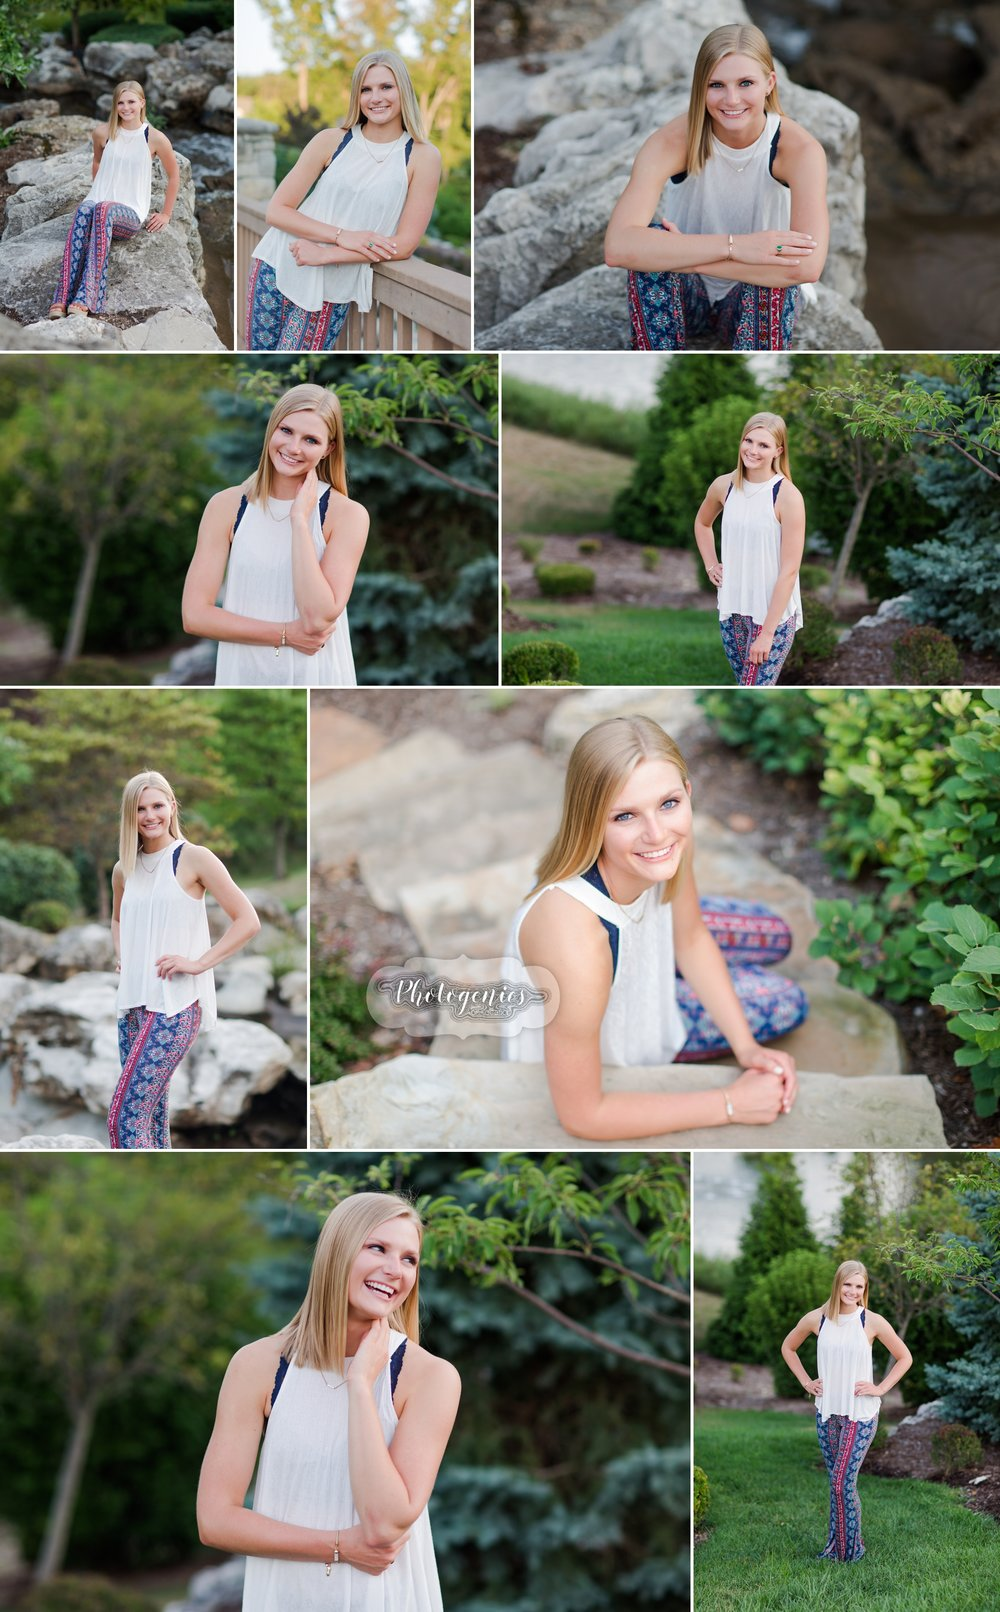 senior_photography_st_louis_mo_wildwood_st_joseph_academy_poses_modern_senior_girl_washington_mo 2